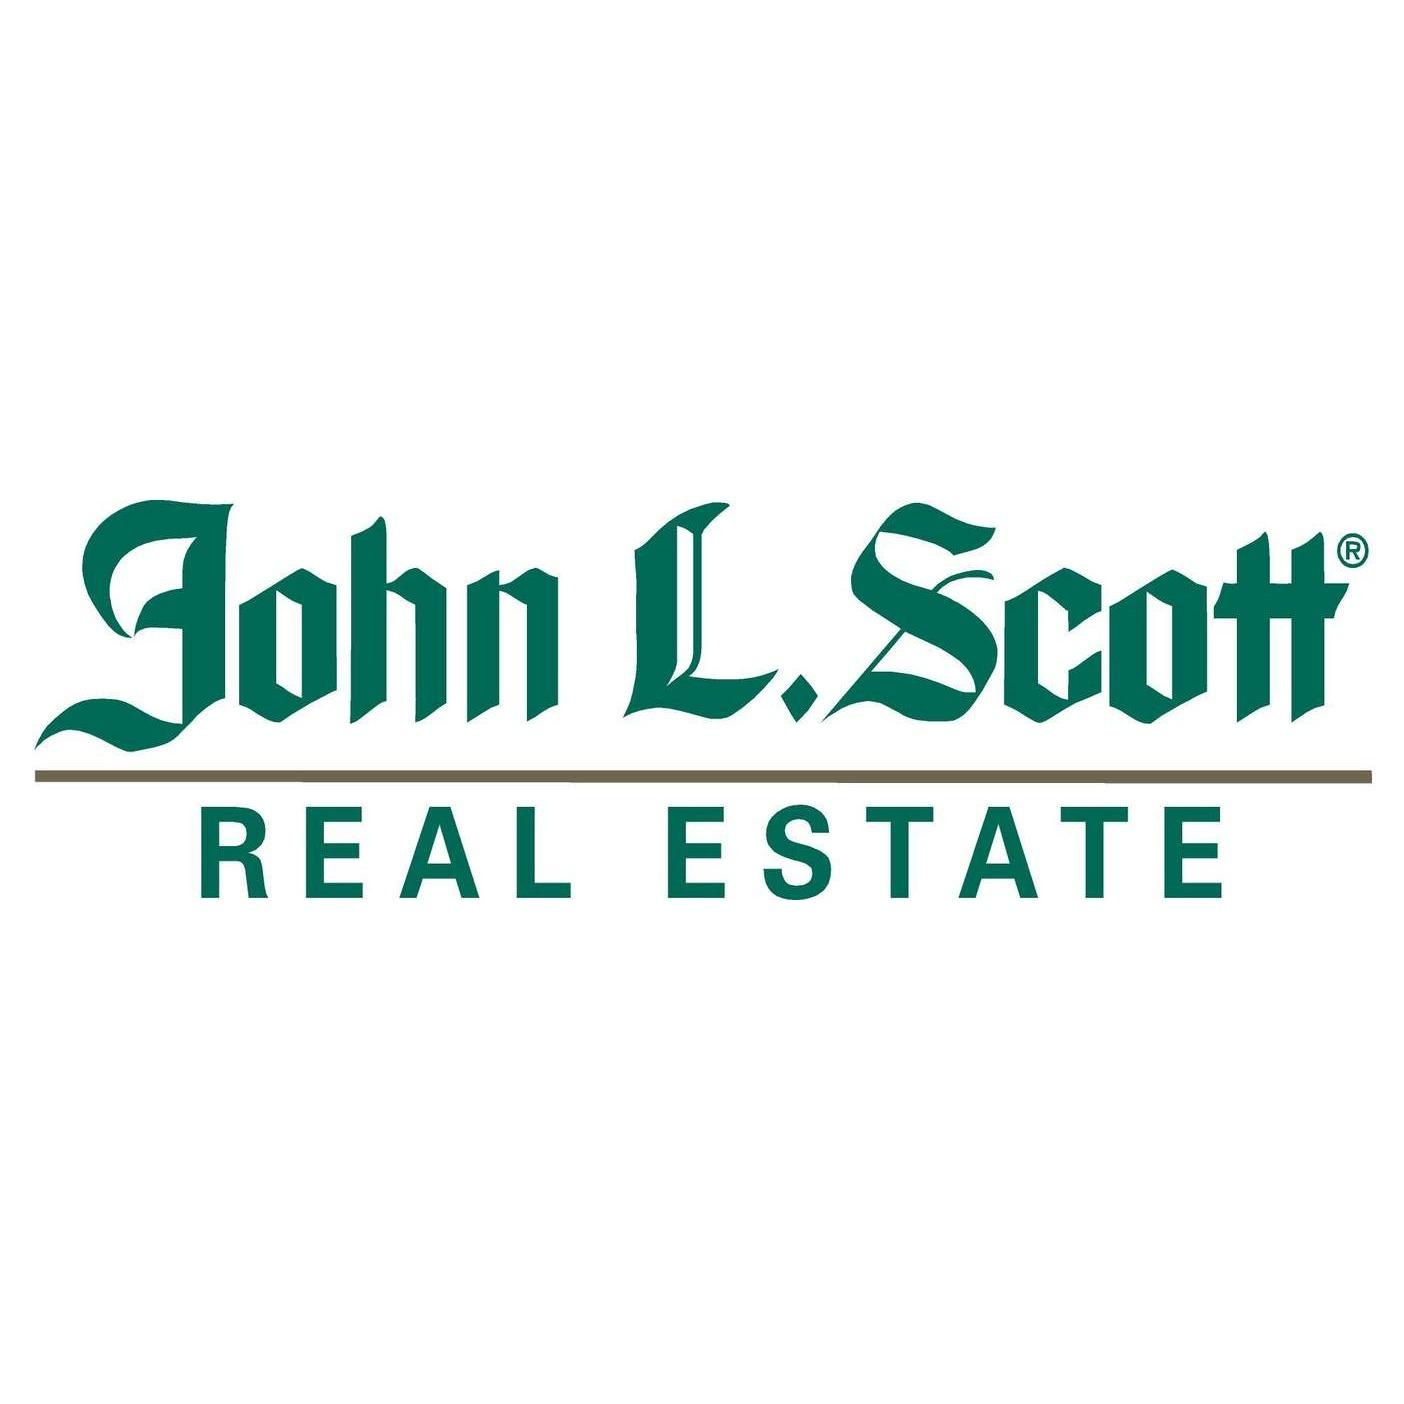 Todd Branson | John L Scott Real Estate